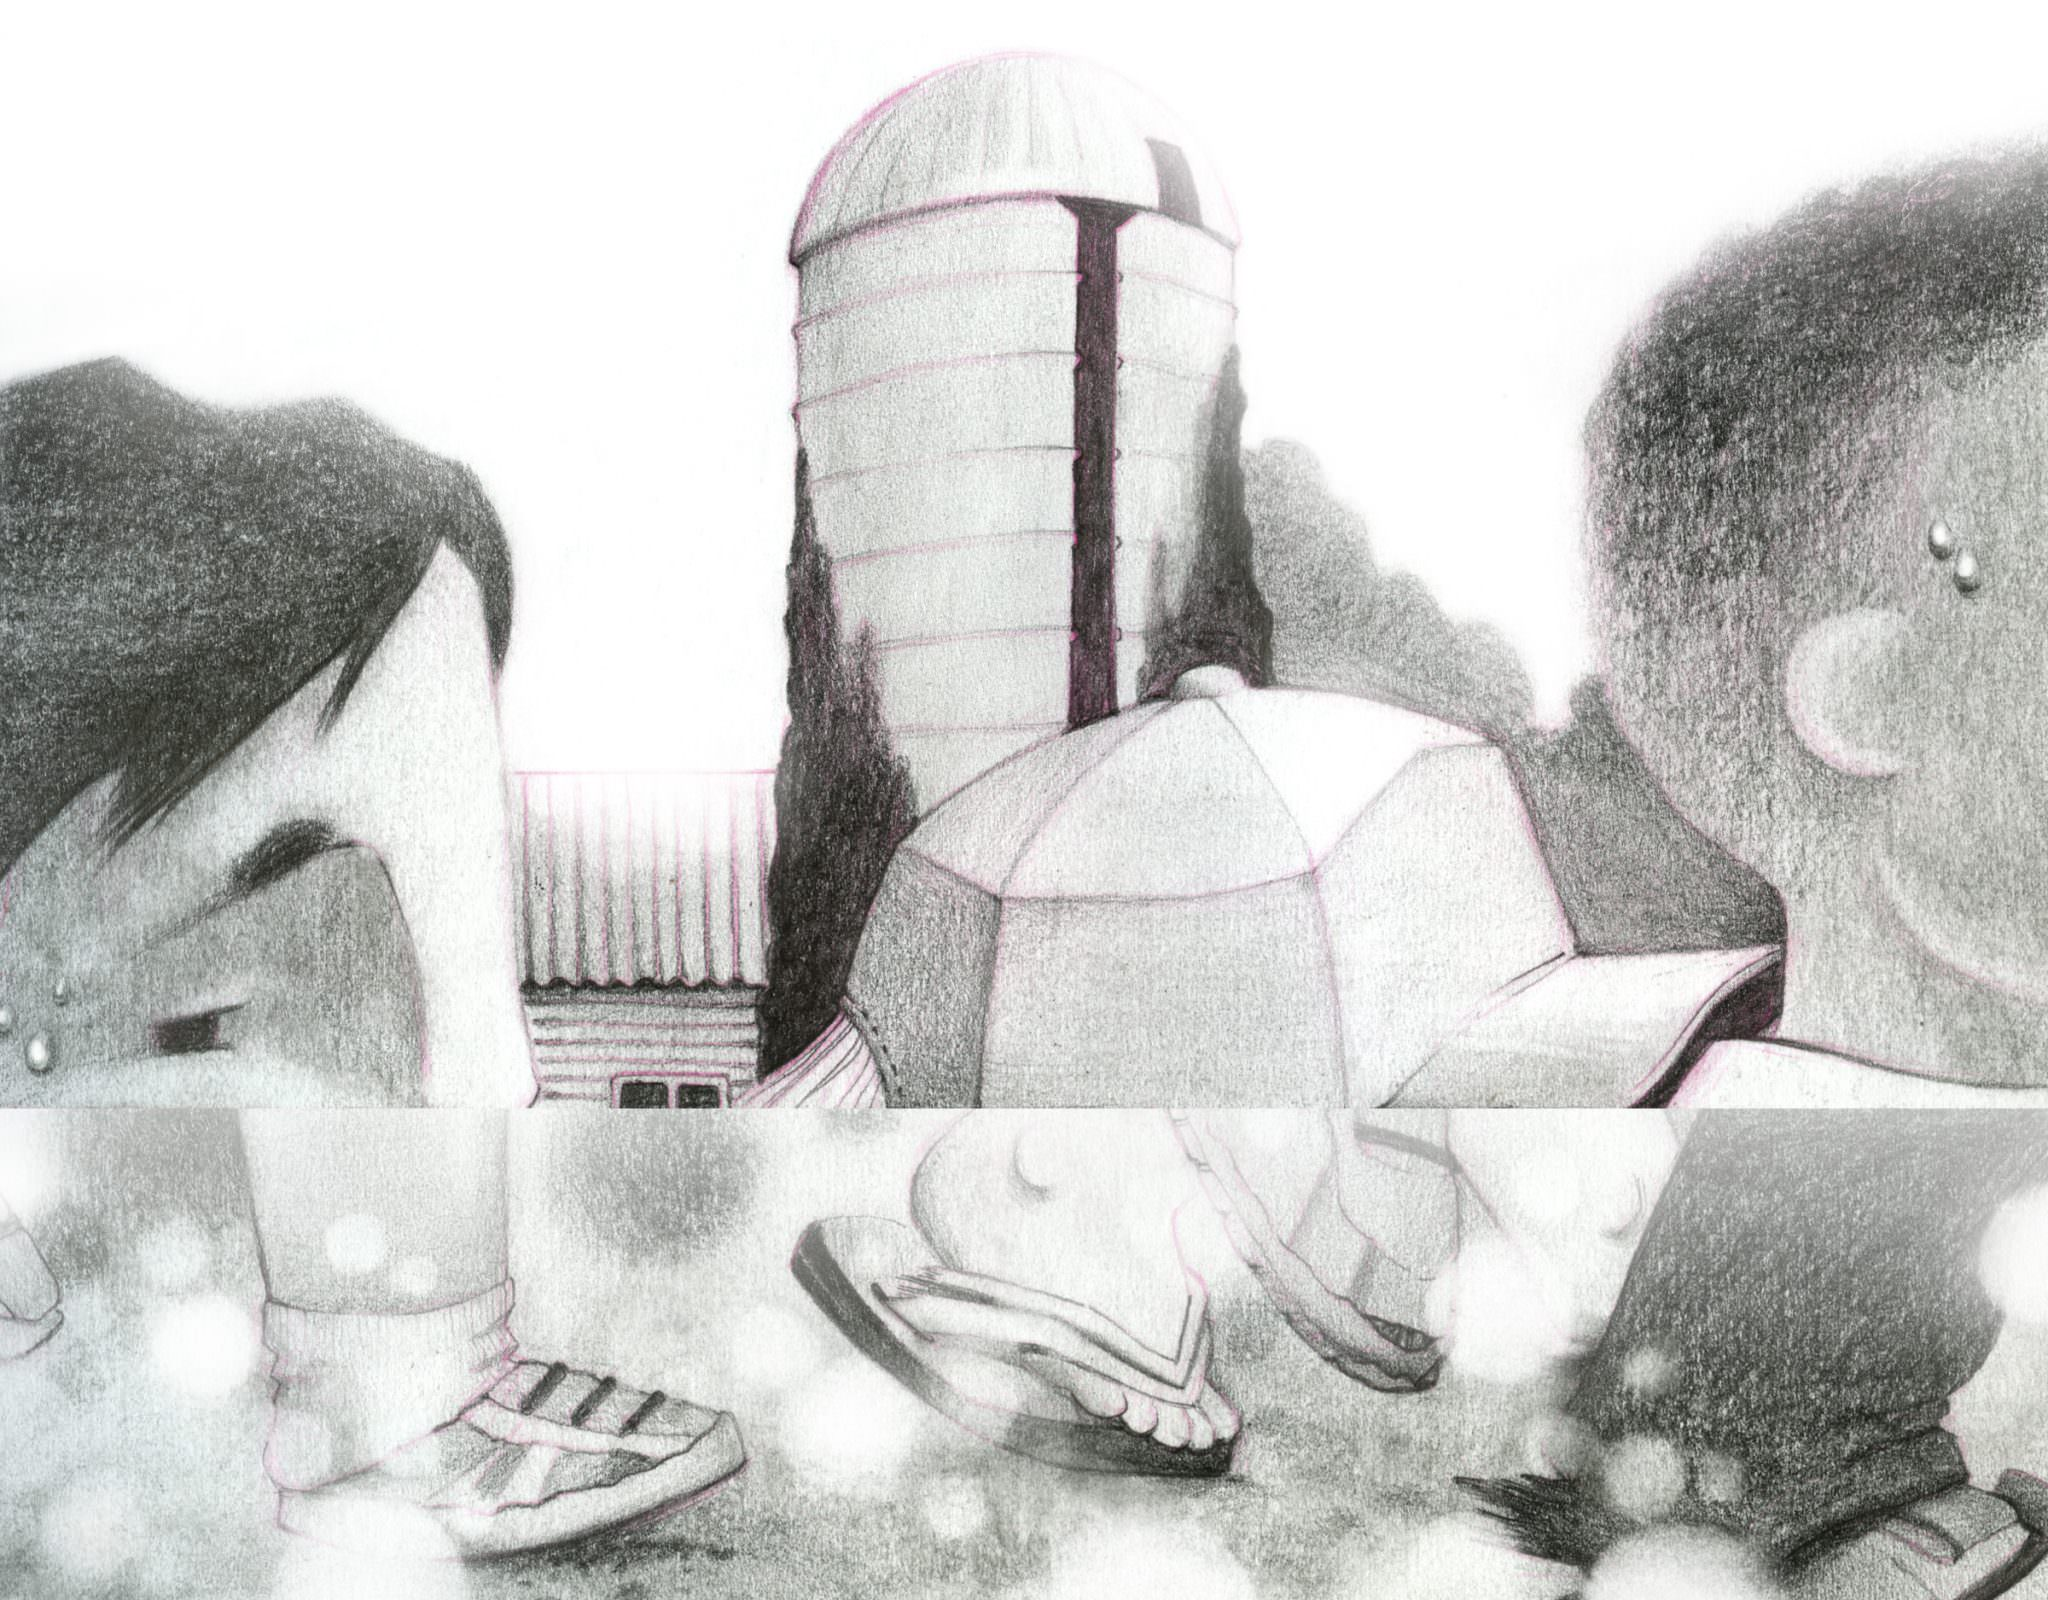 Illustration: children walk past a silo, beads of sweat on their faces.